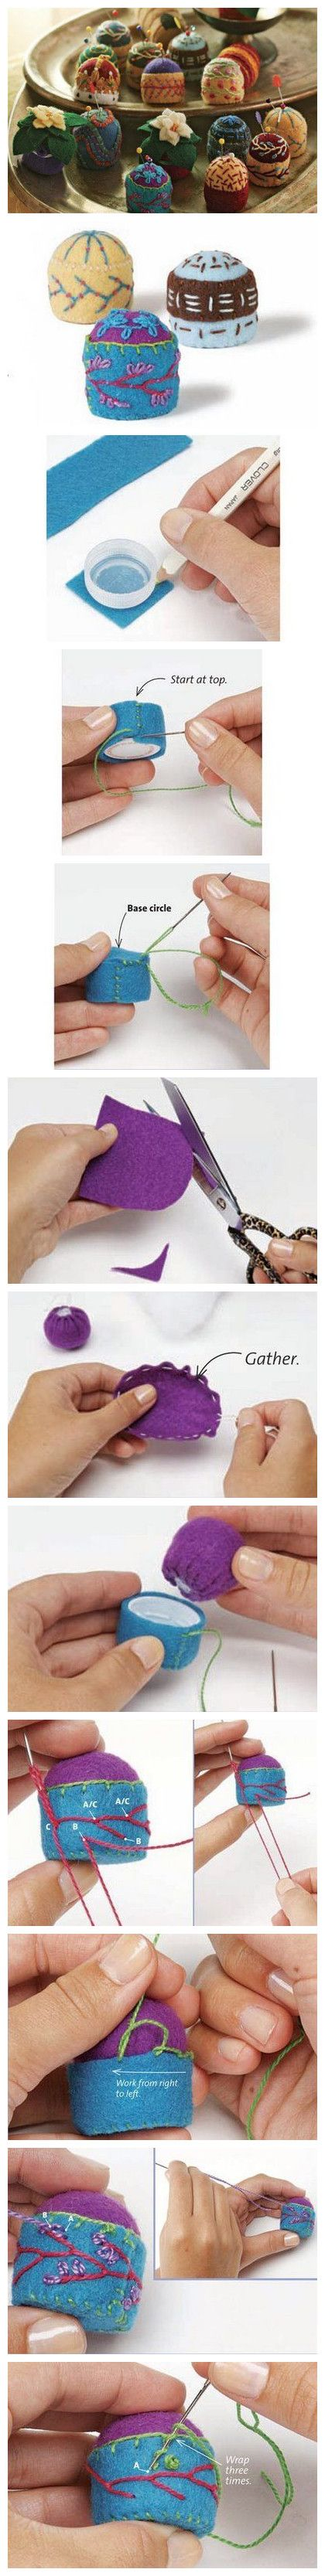 how cute, great recycling project and easy enough for older kids